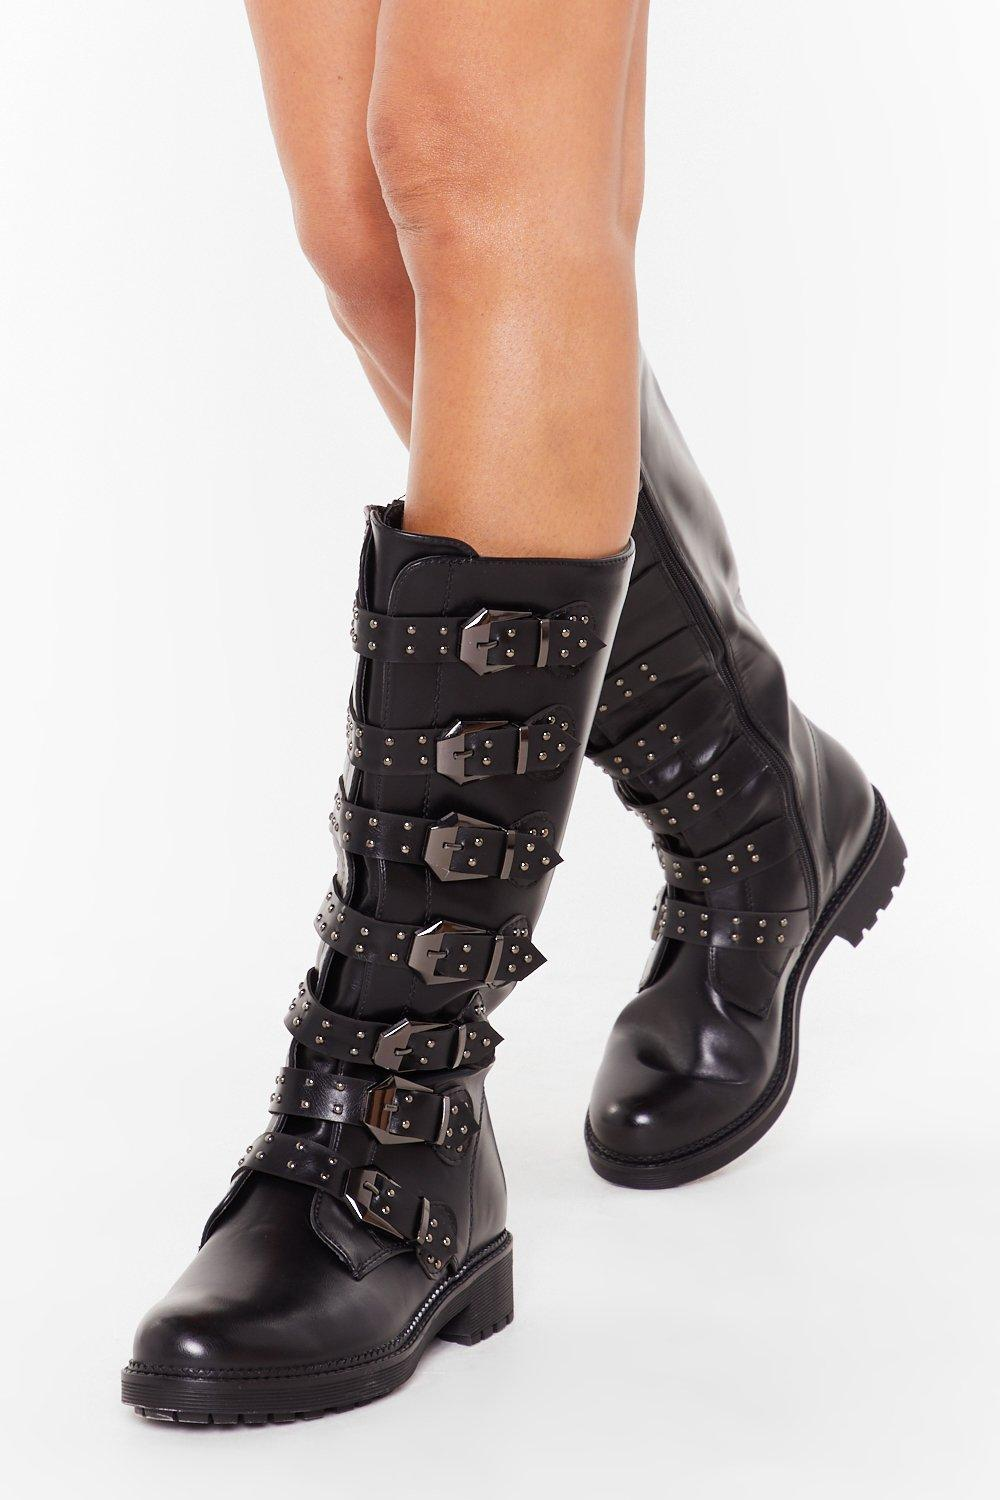 Image of Buck It Faux Leather Calf-High Boots